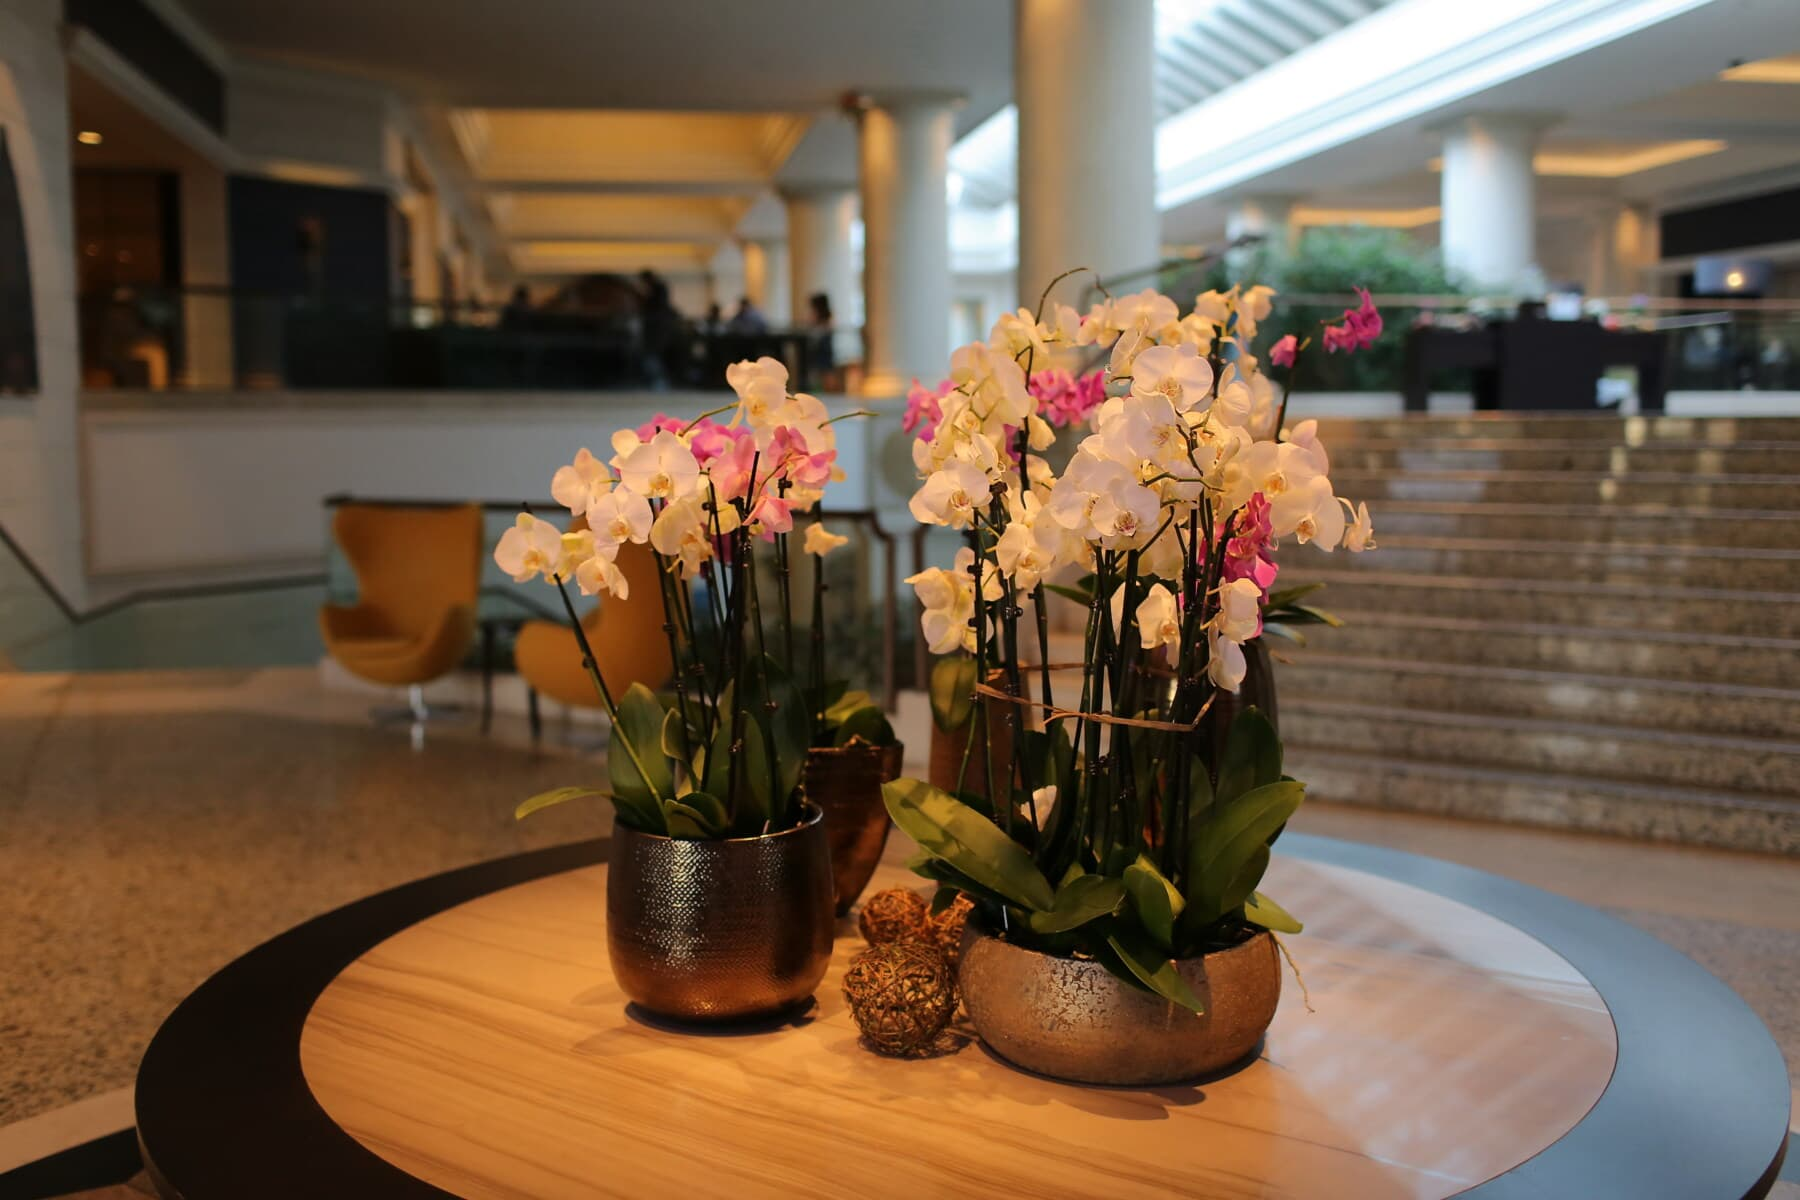 hotel, hallway, interior decoration, orchid, table, vase, flowers, bouquet, arrangement, interior design